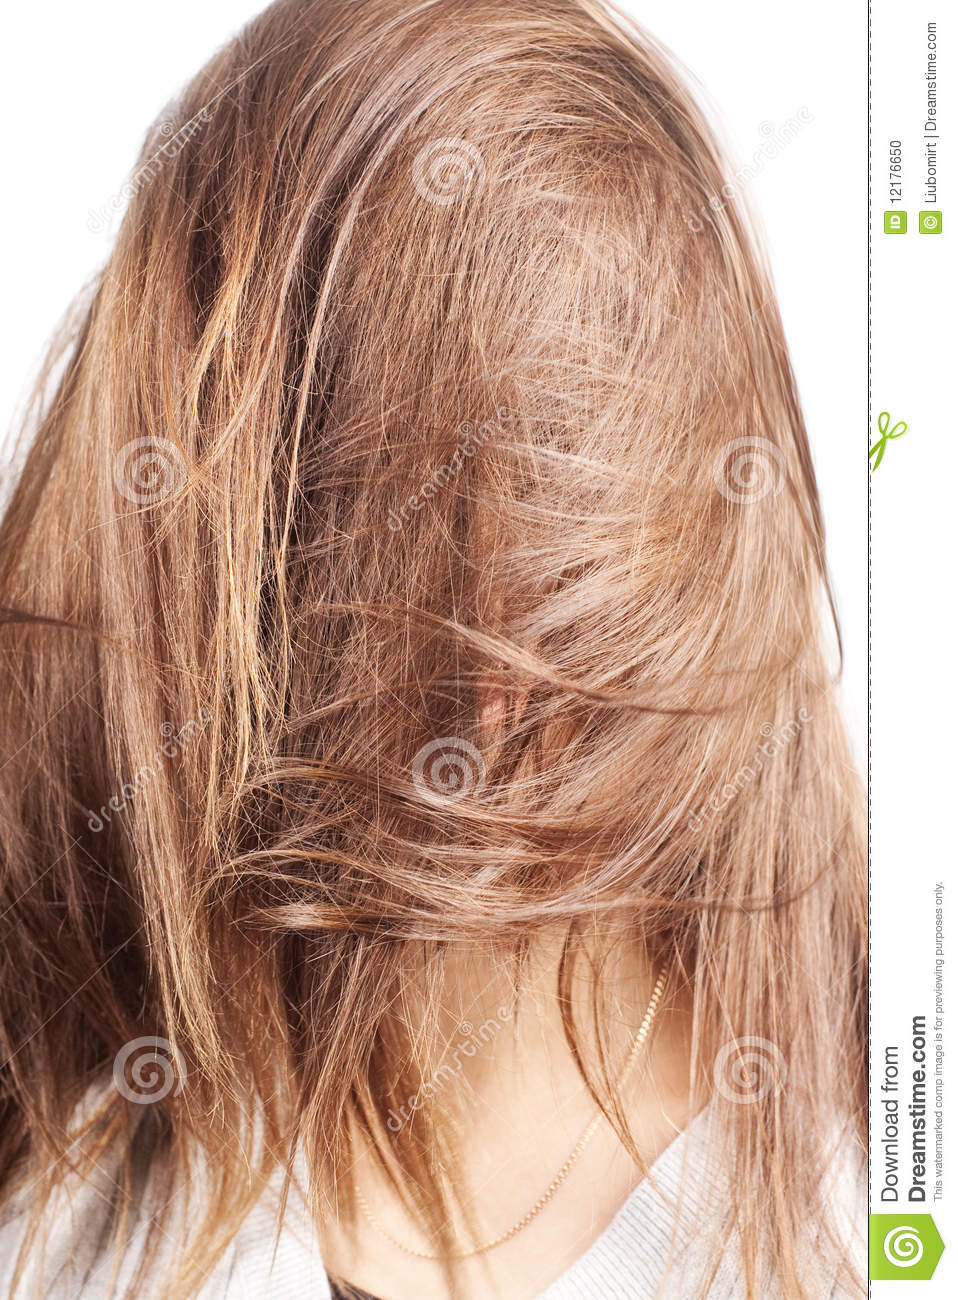 Chestnut natural long hair covering face of a woman with selective ...